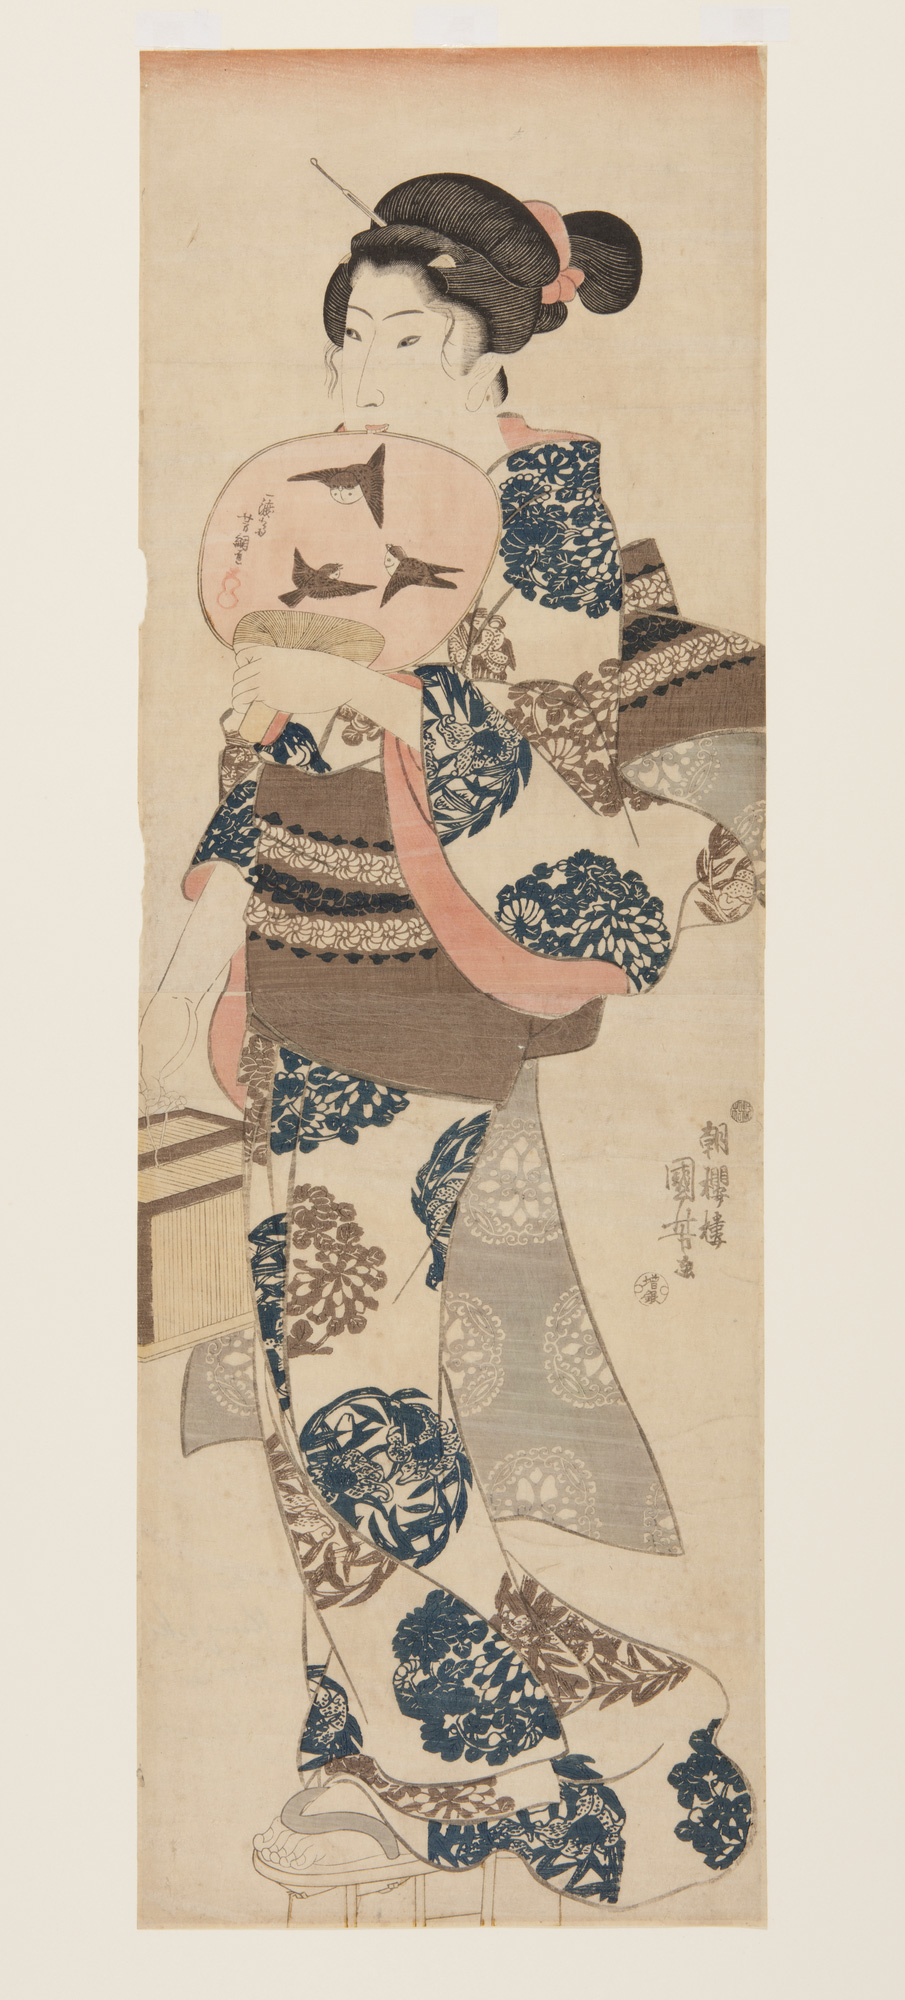 Japanese print of a woman dressed in traditional clothes, bird motifs on the fan she holds to her face and plant motifs on her kimono.